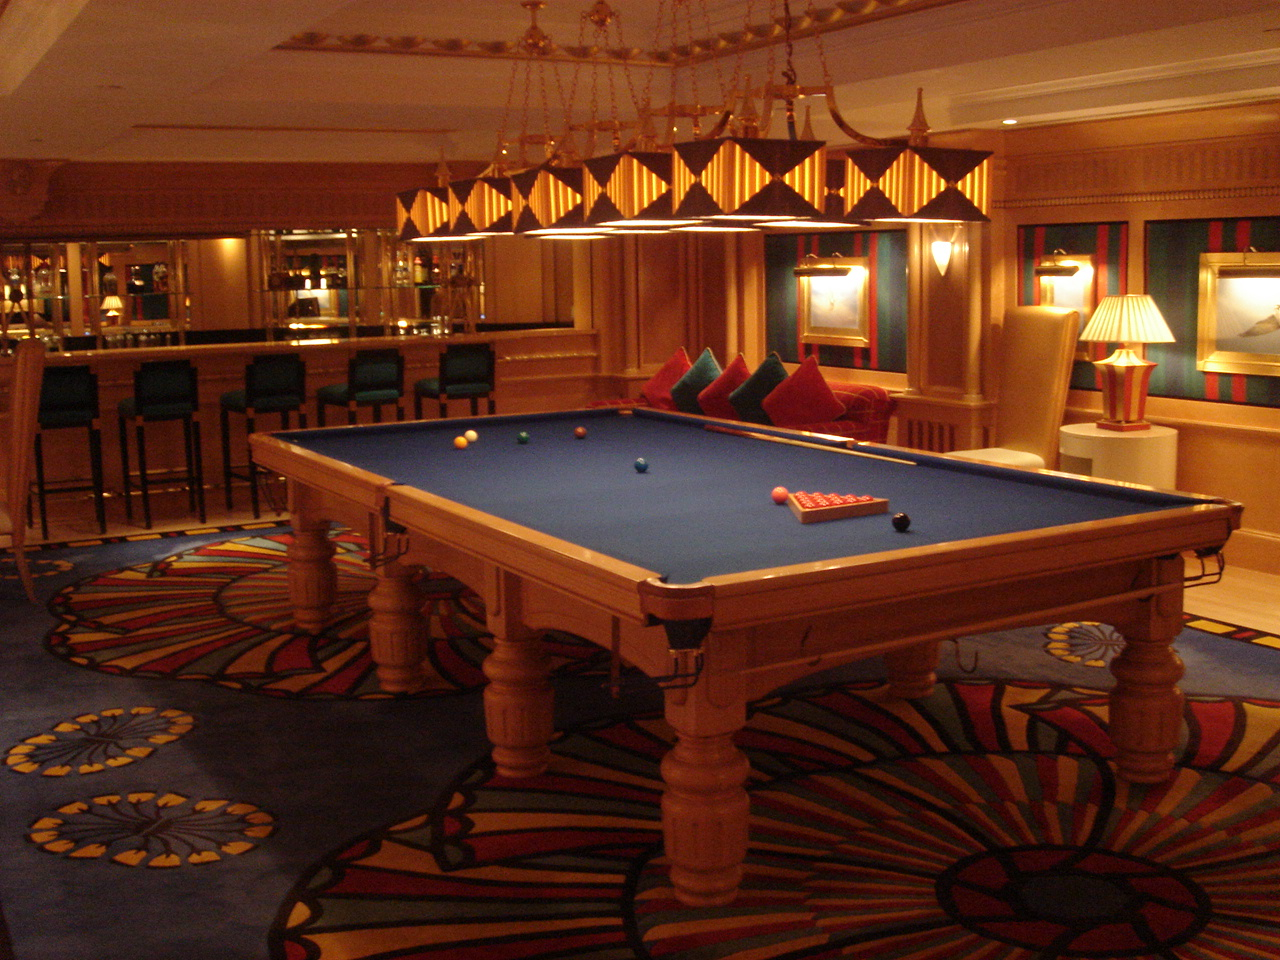 Billiard room burj al arab flickr photo sharing for Burj al arab hotel rooms